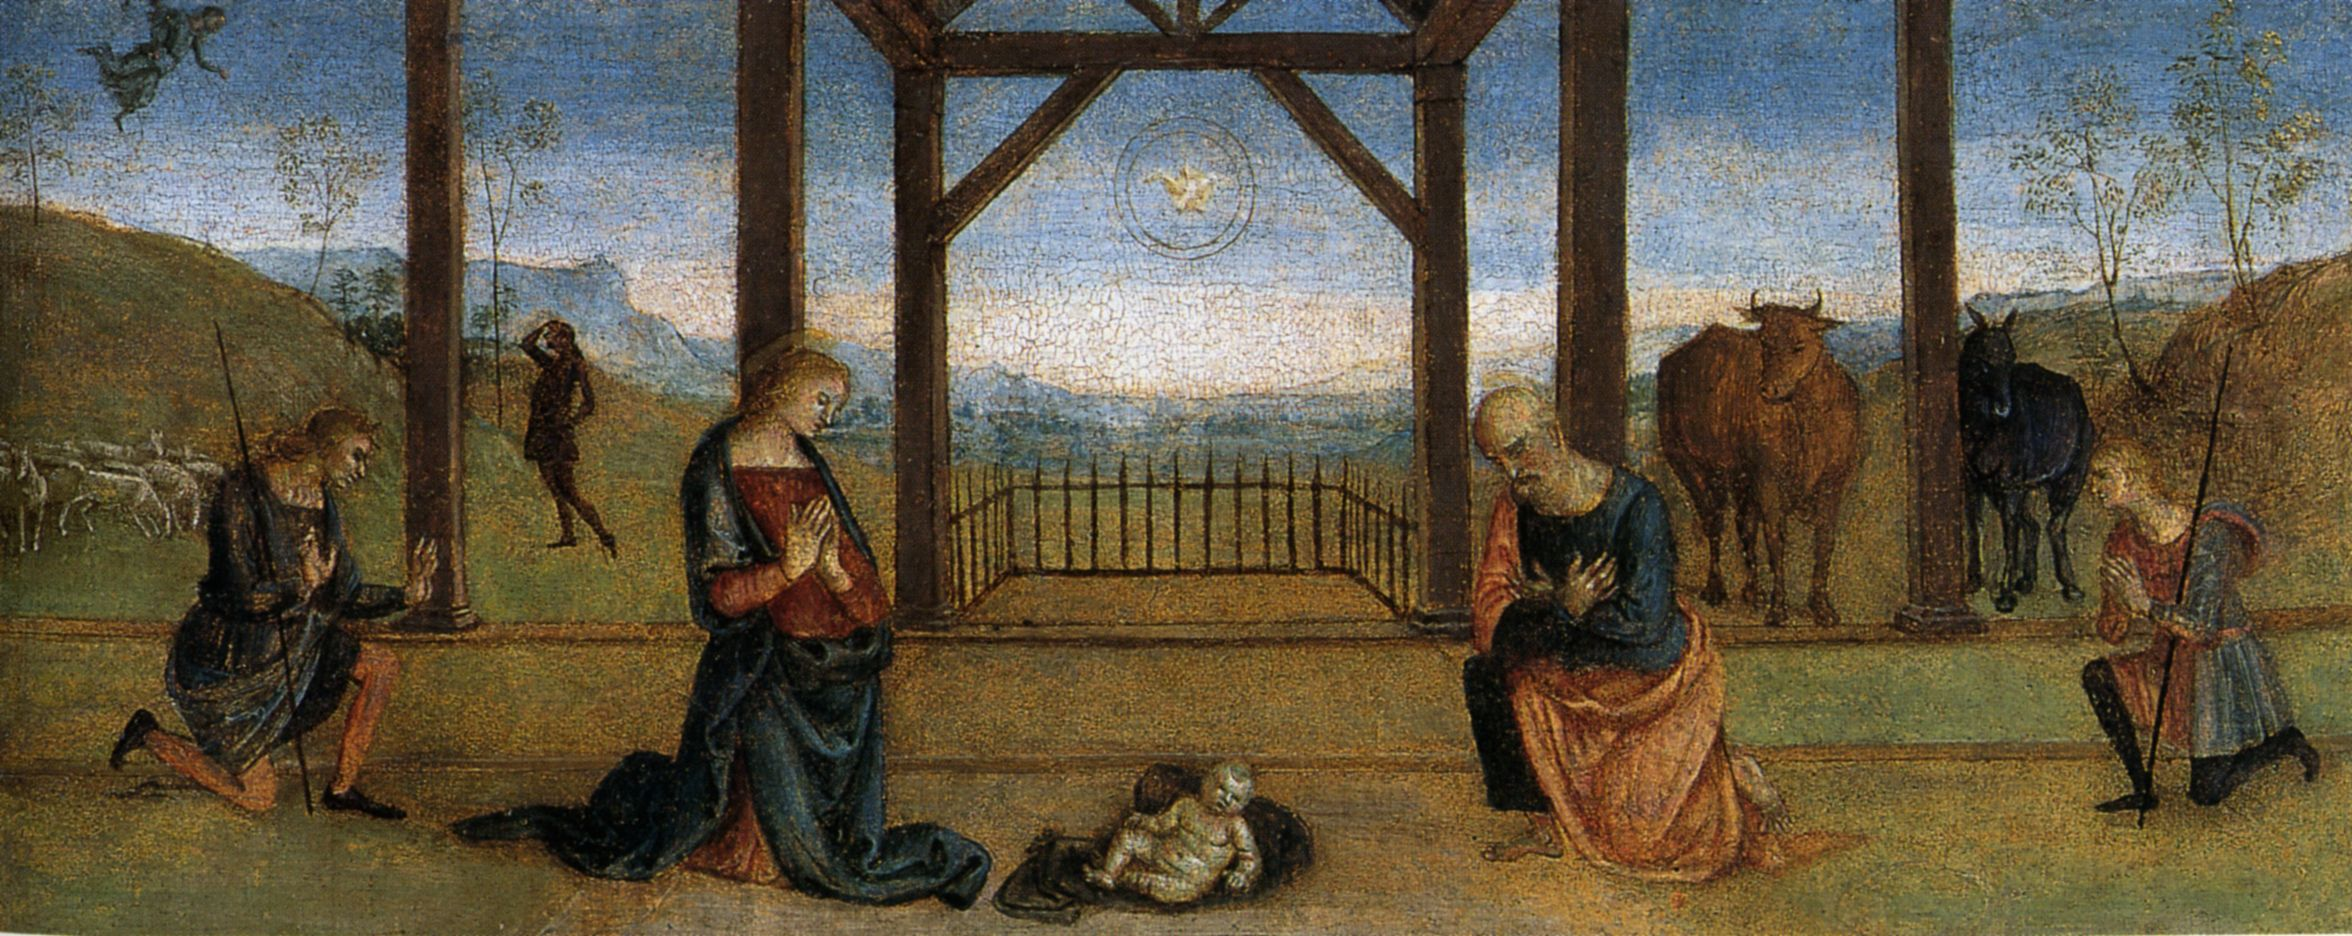 Nativity (Pietro Perugino, 1513, oil on panel)